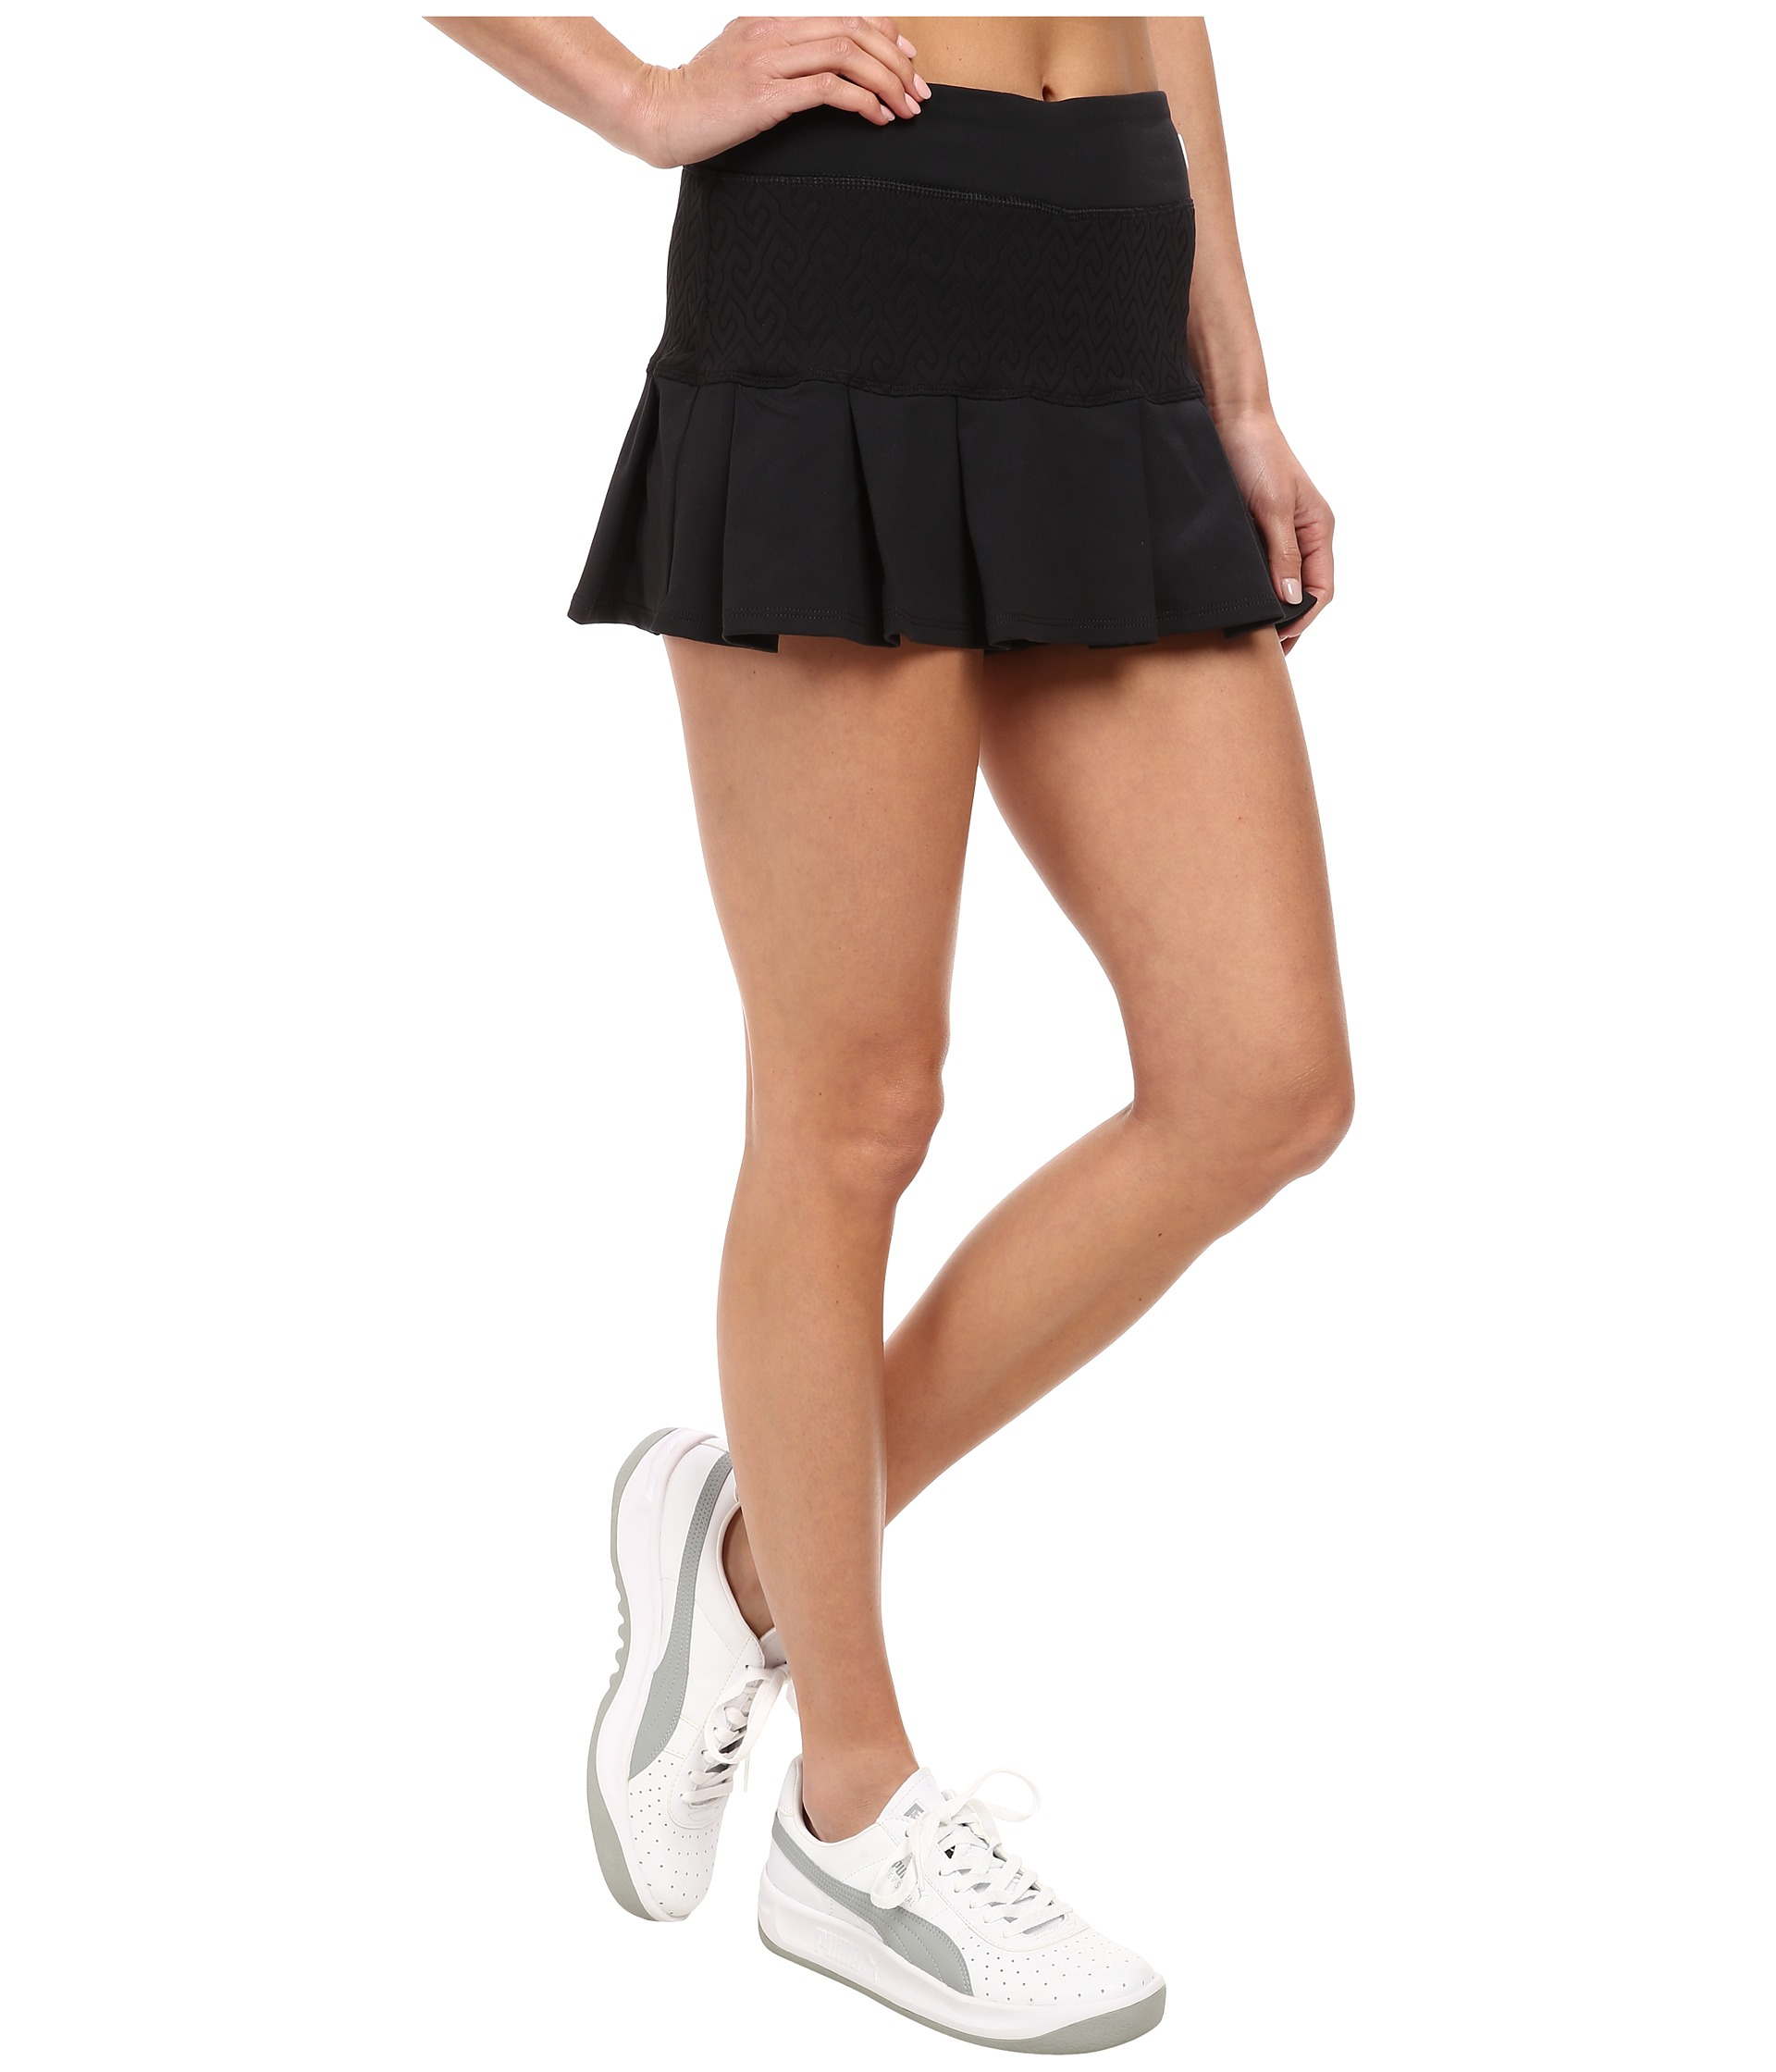 c82b50ad0f6 Lyst - Trina Turk Racquet Club Jacquard Tennis Skirt in Black